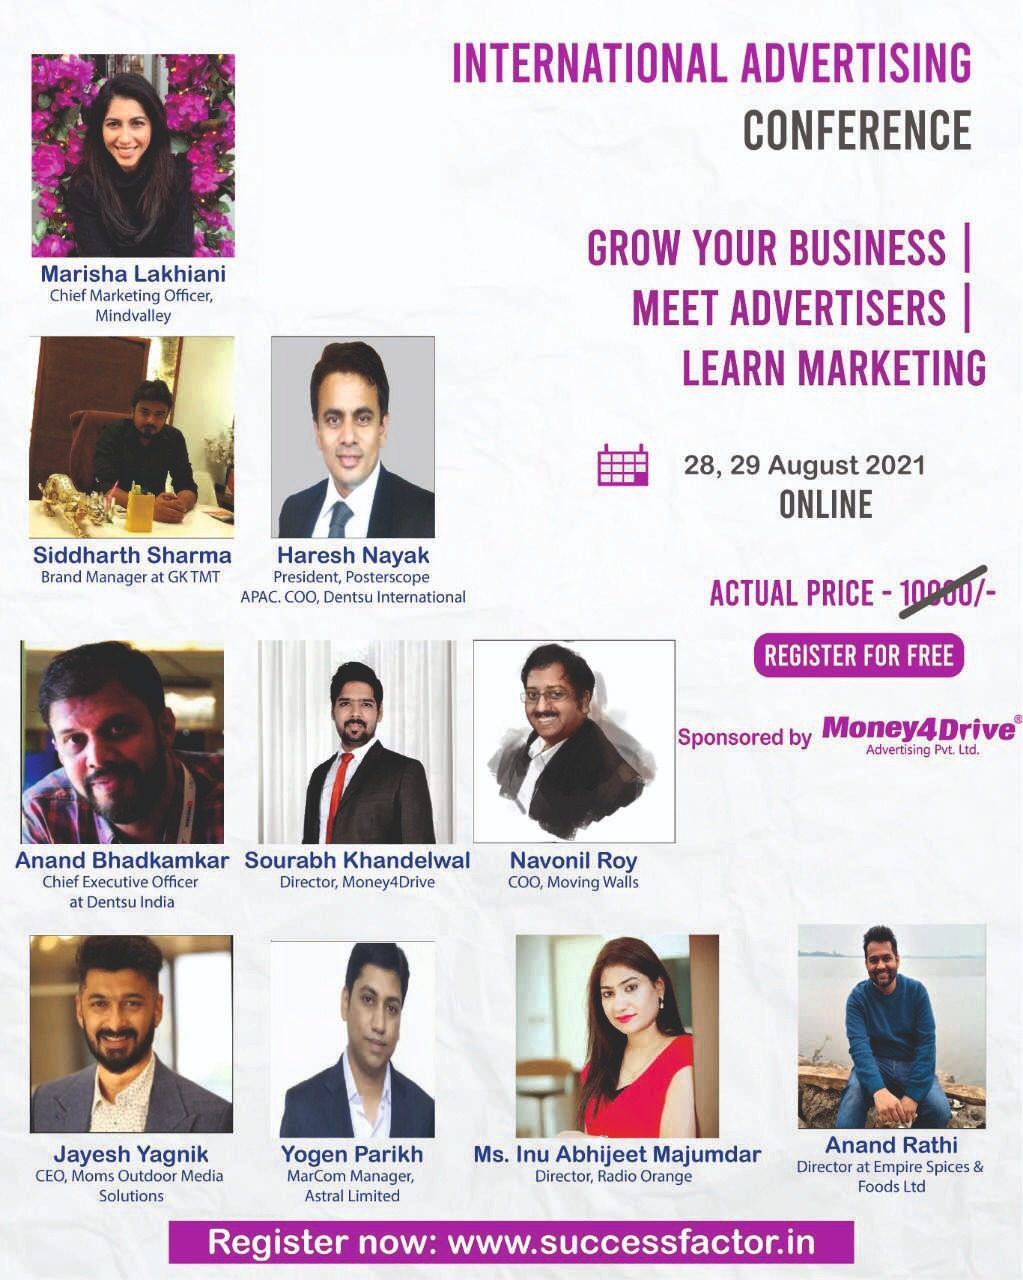 International Advertising Conference 2021 to be organized for the first time in India